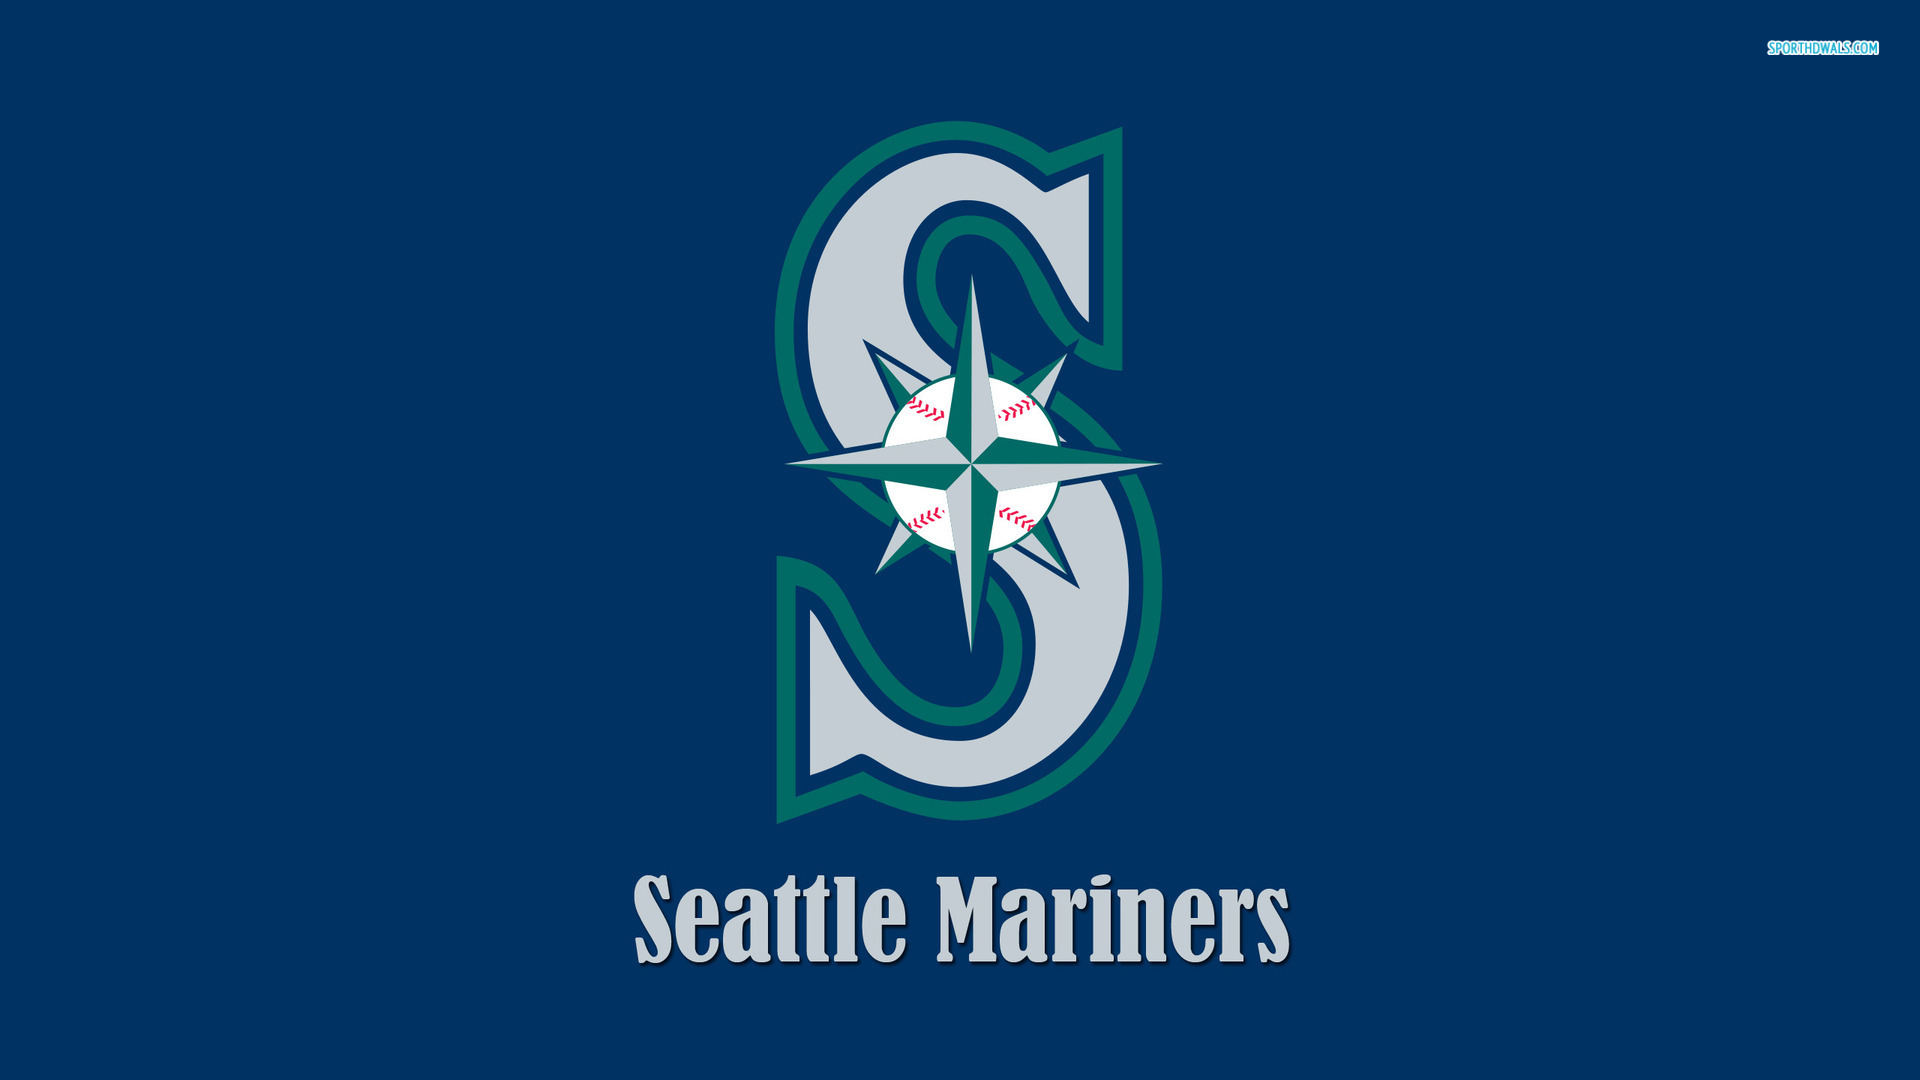 Seattle Mariners wallpaper 1920x1080